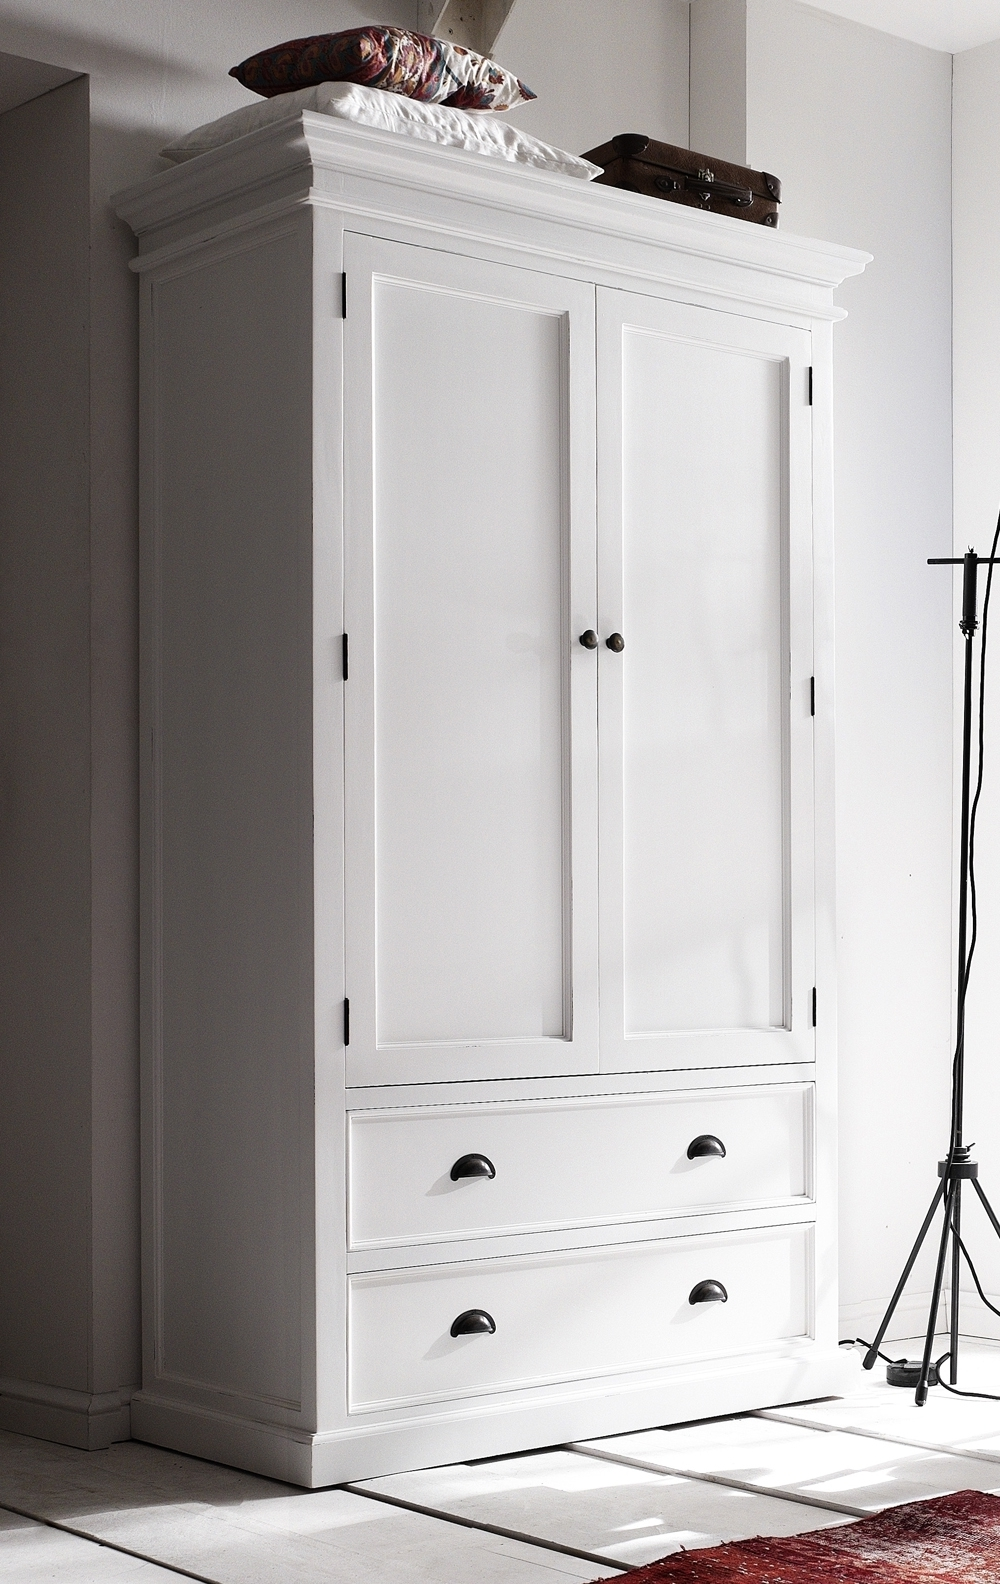 White Wood Wardrobes Throughout Most Current With The Best Solution To Practical But Elegant Design, The (View 13 of 15)